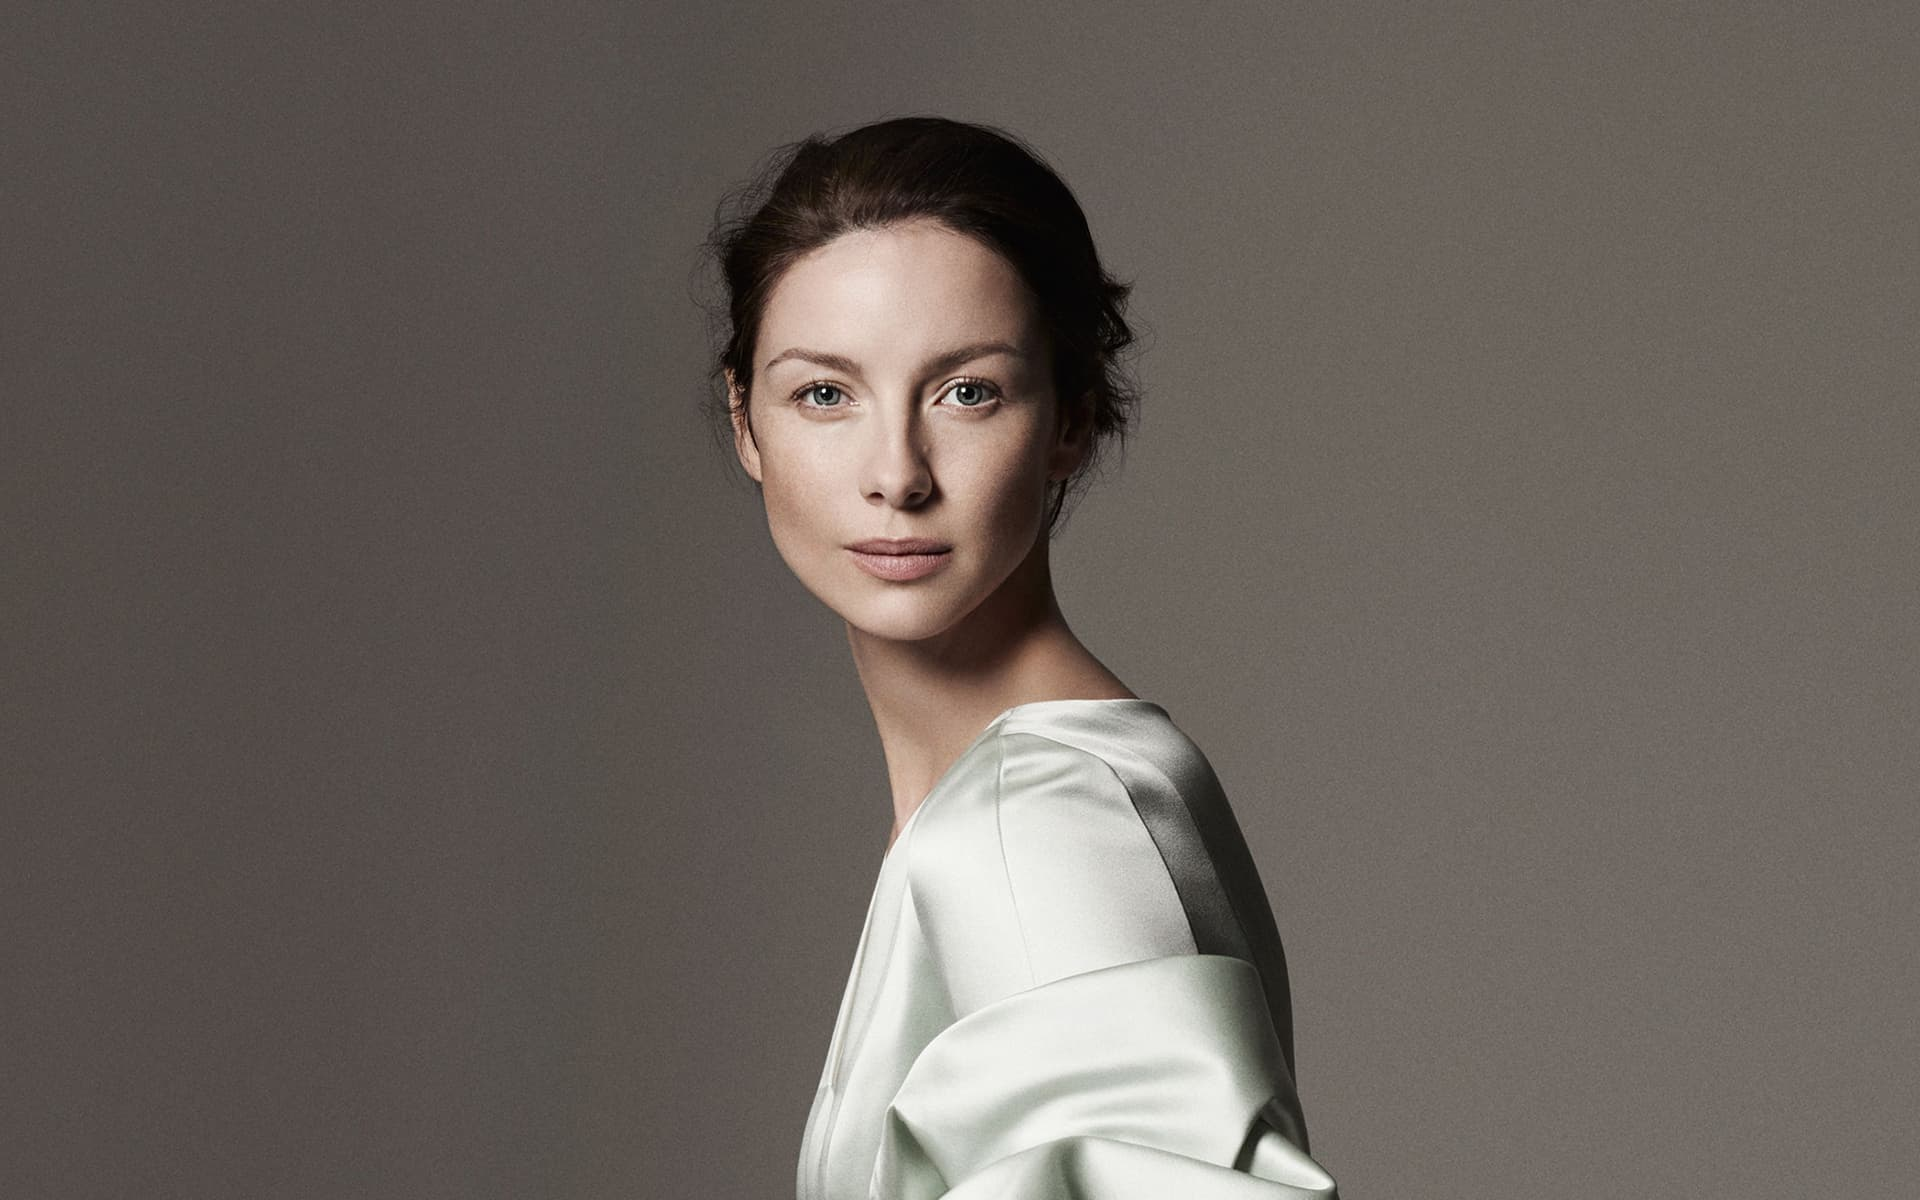 13+ Caitriona Balfe wallpapers HD High Quality Resolution Keira Knightley Movies